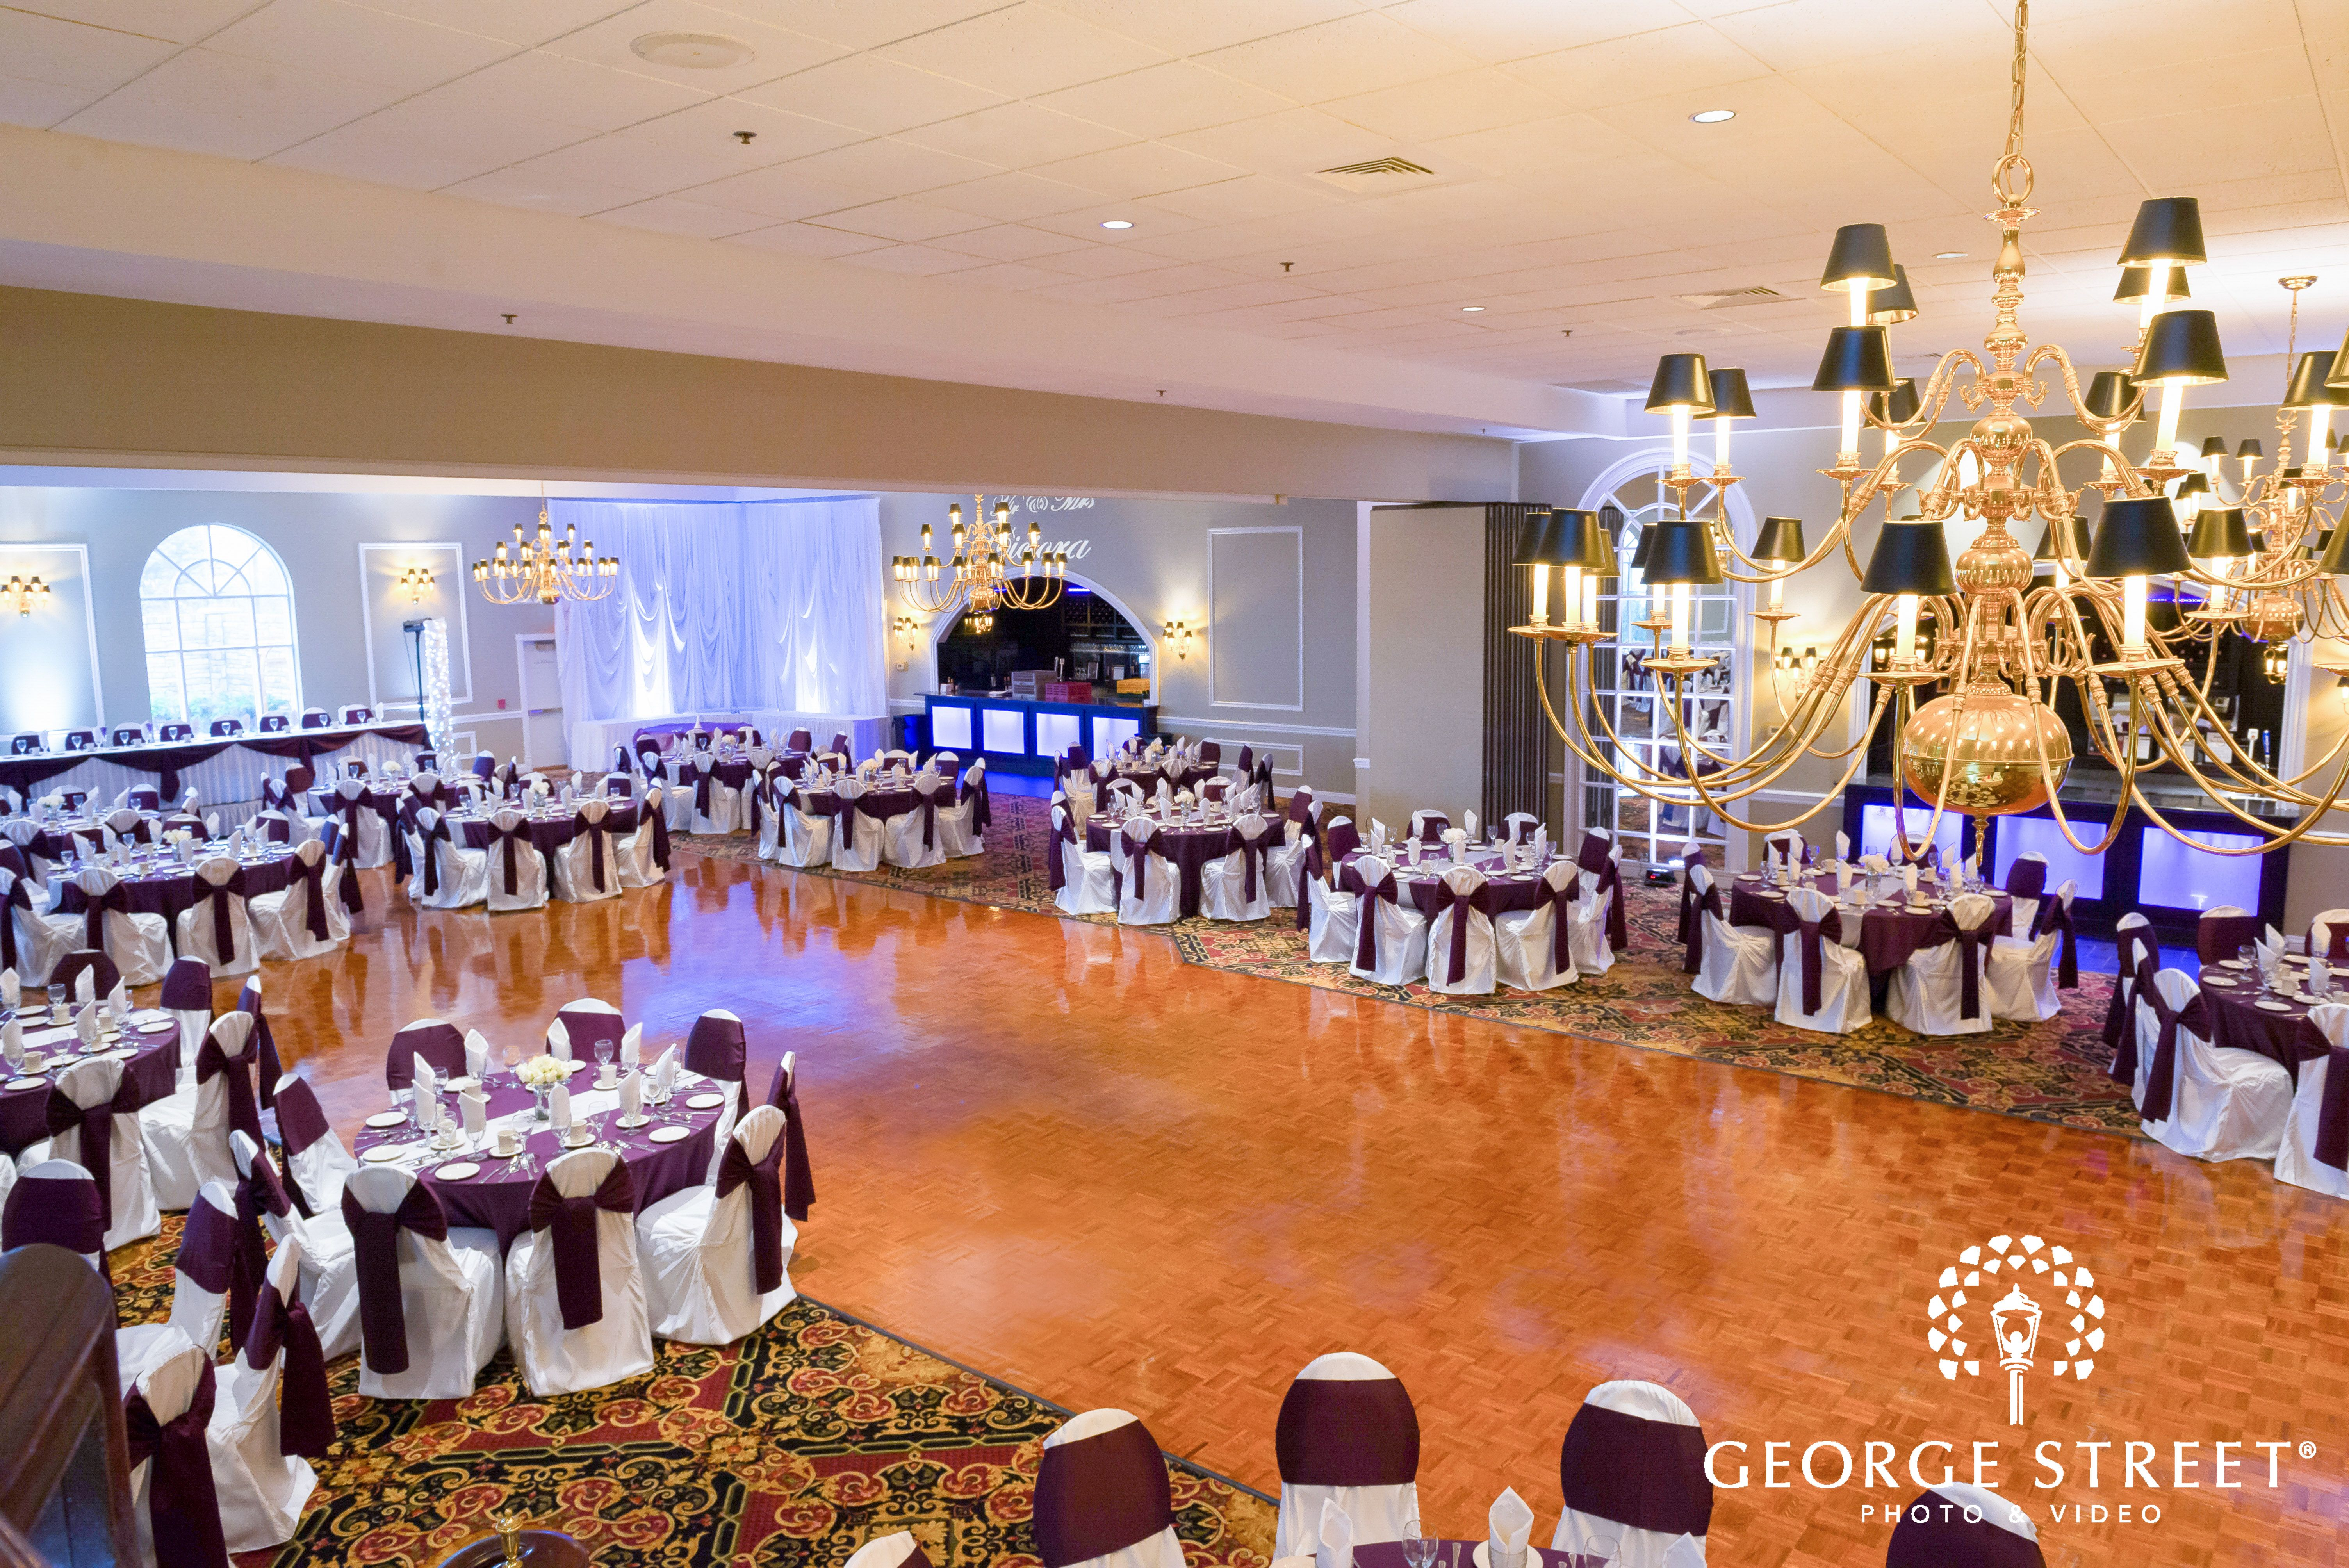 Tuscany Falls Banquets Formerly DiNolfos Now Offering 3 Decades Of Service Out The Most Up To Date Completely Renovated Wedding Venue